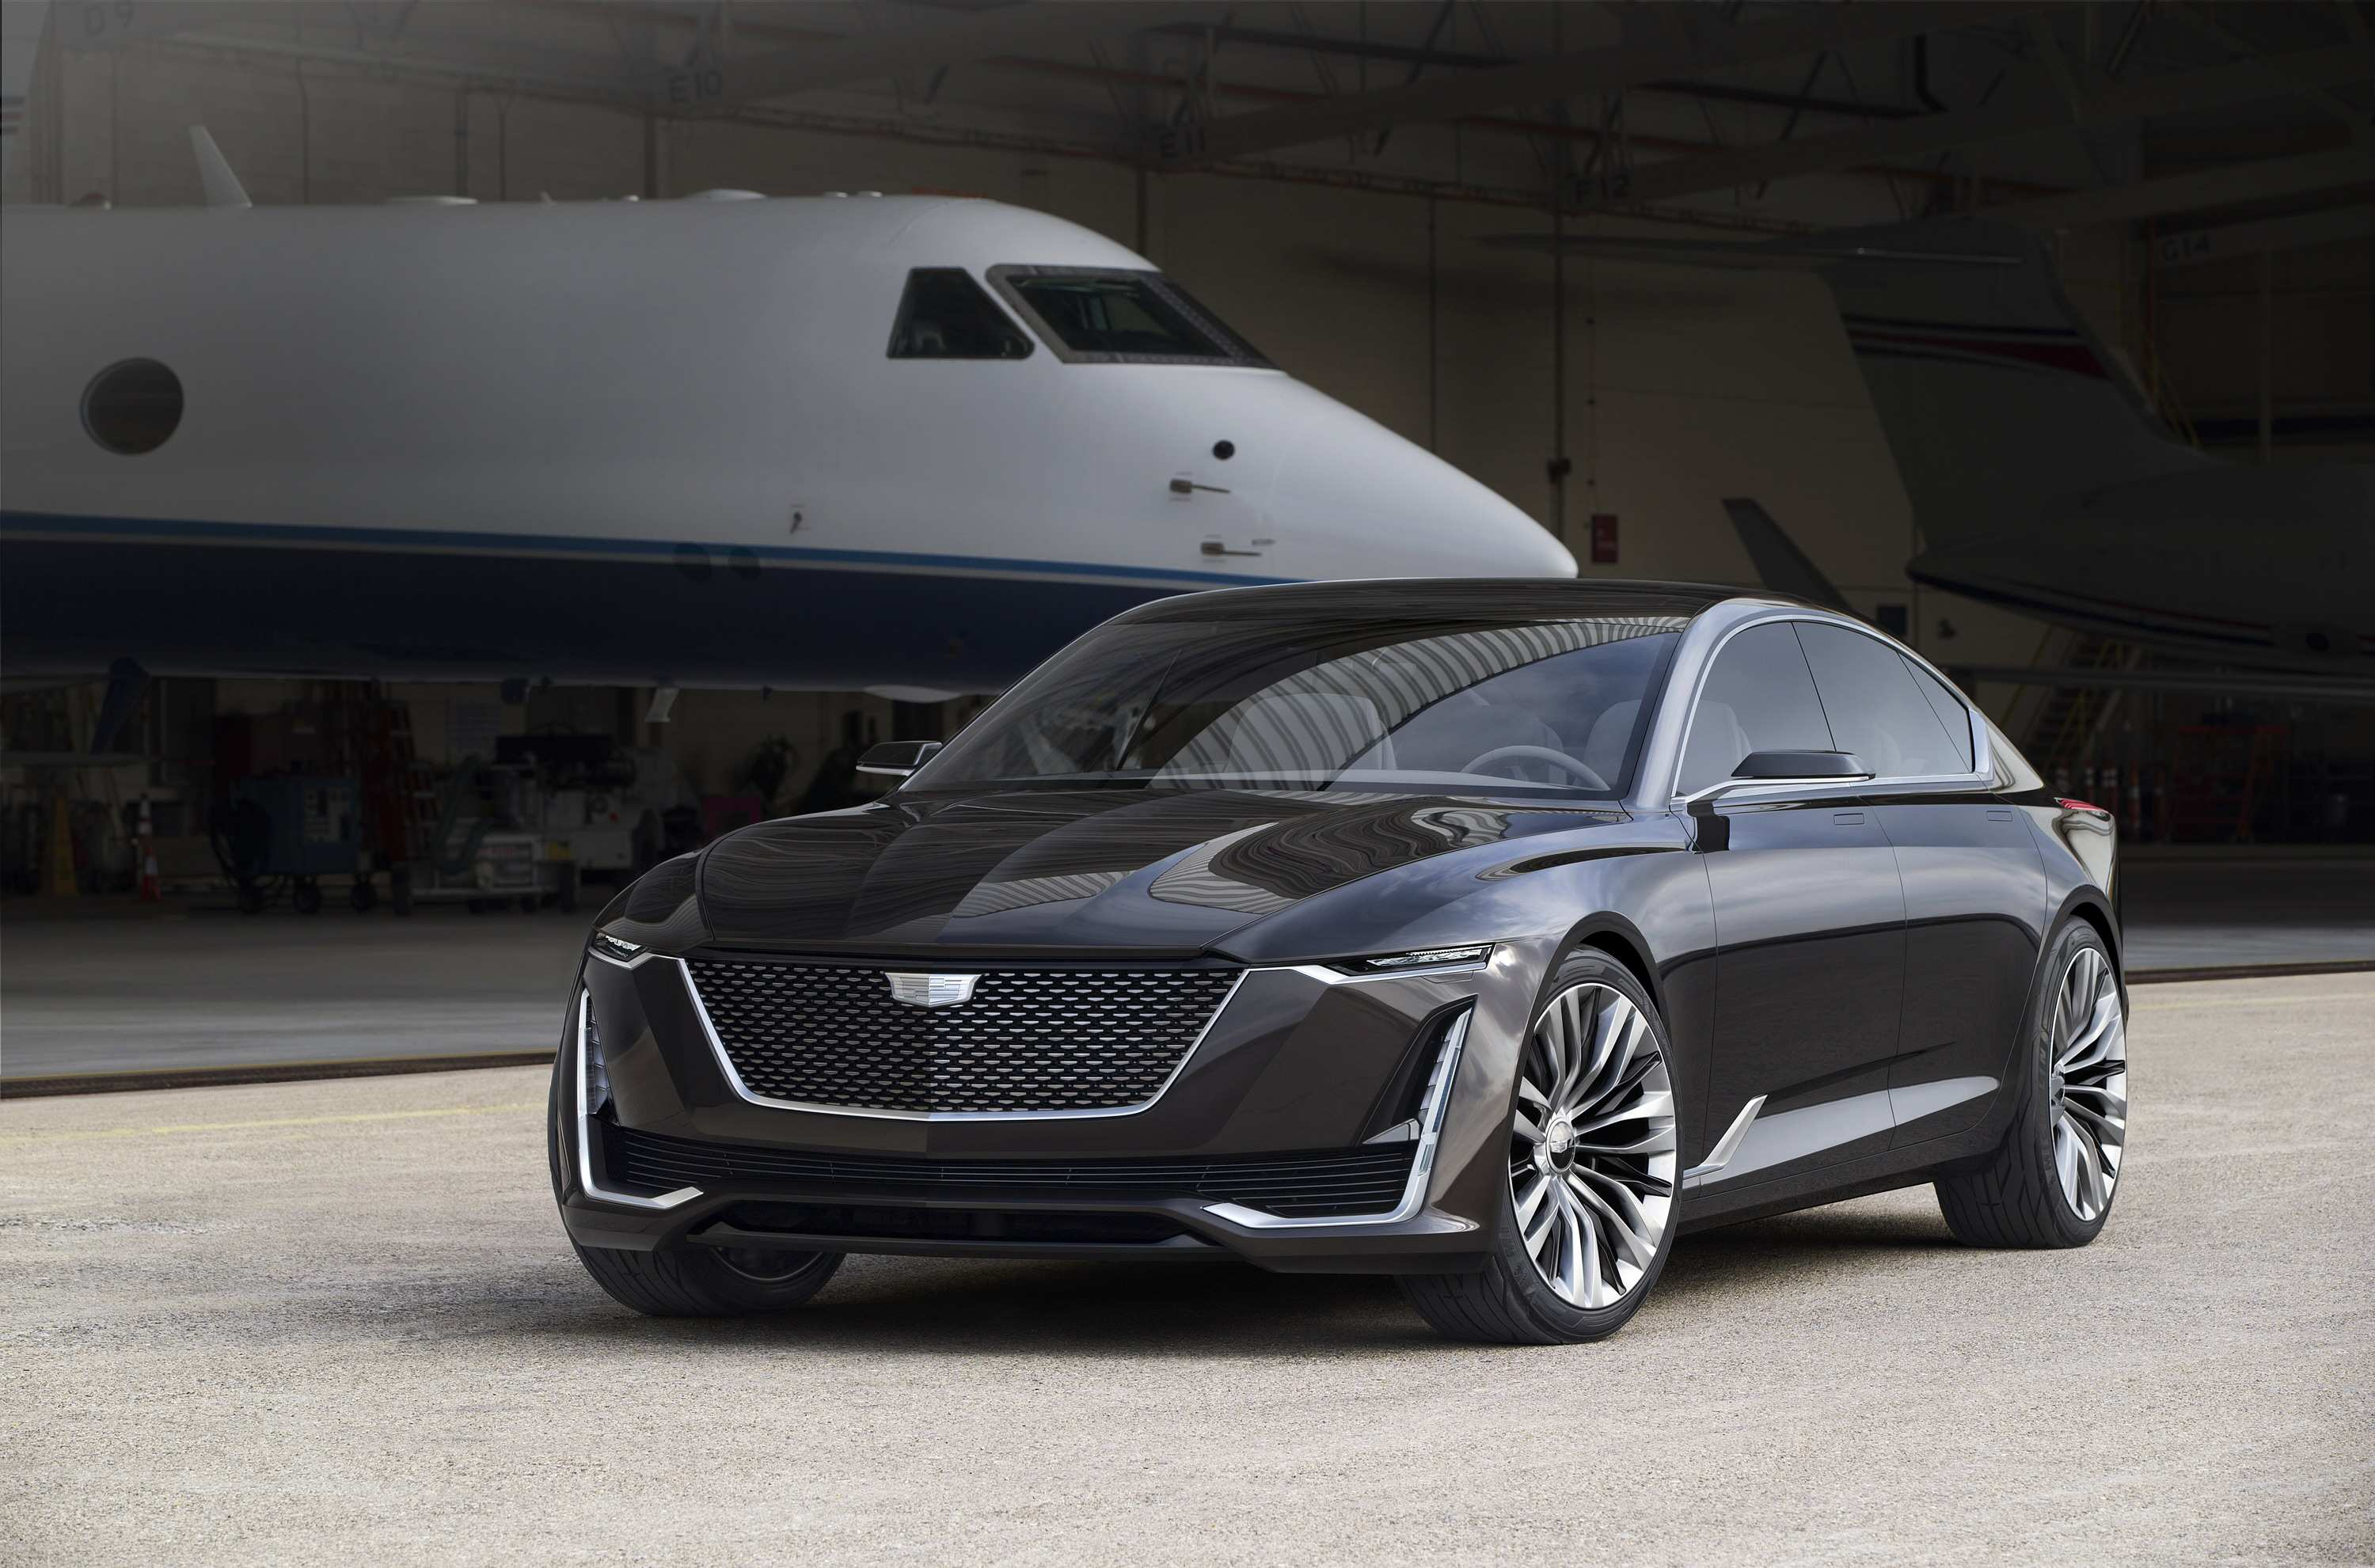 55 The 2019 Cadillac Ct5 Images by 2019 Cadillac Ct5